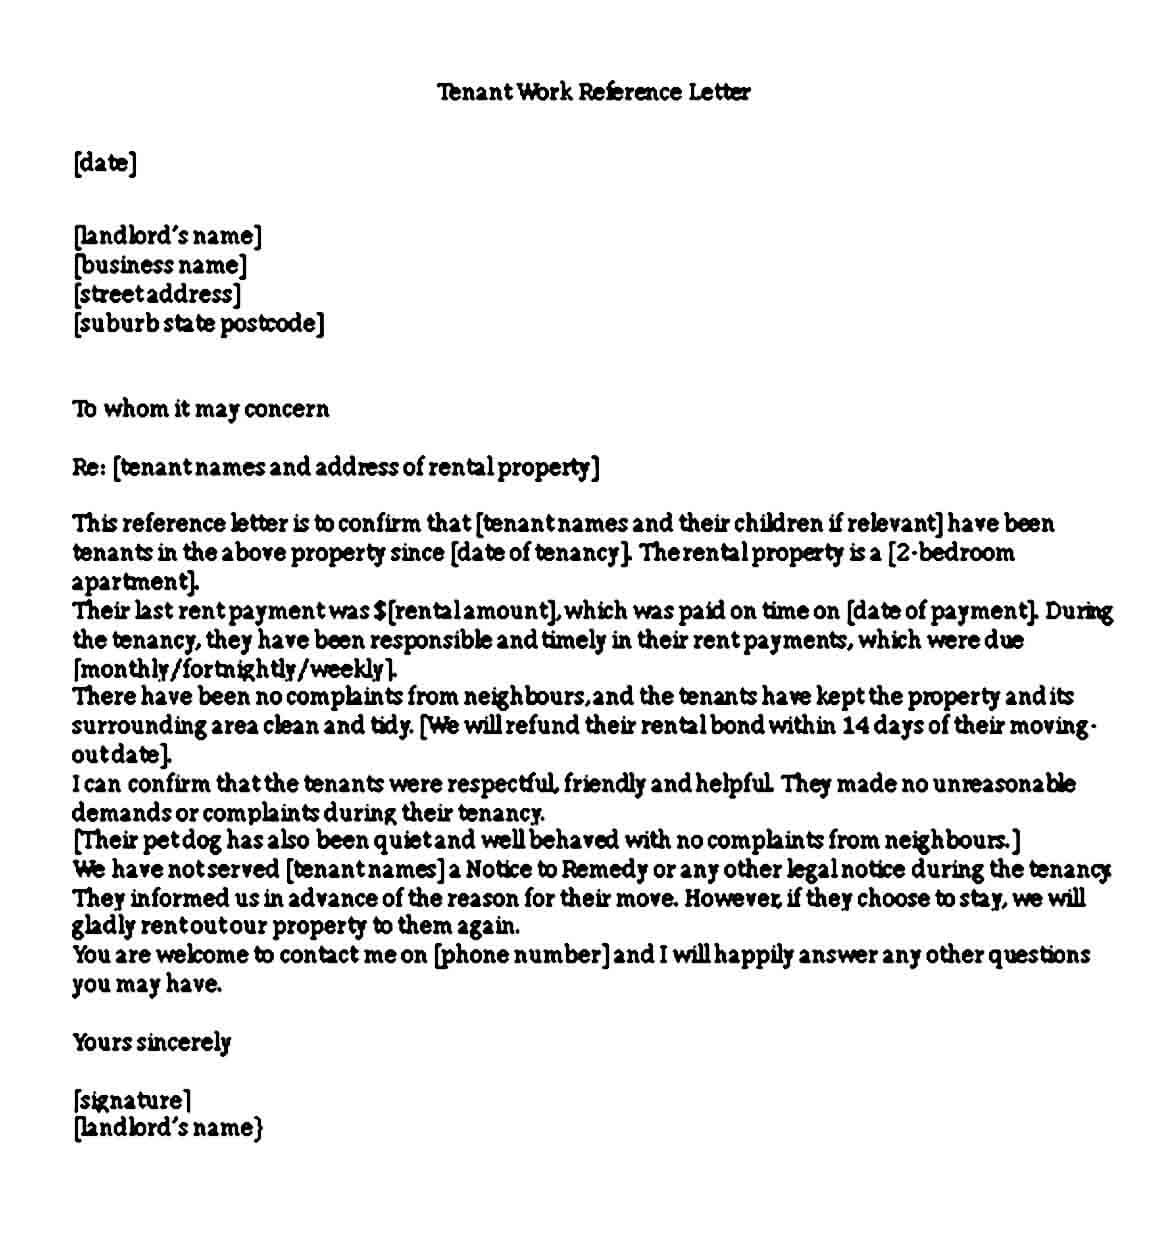 Tenant Work Reference Letter